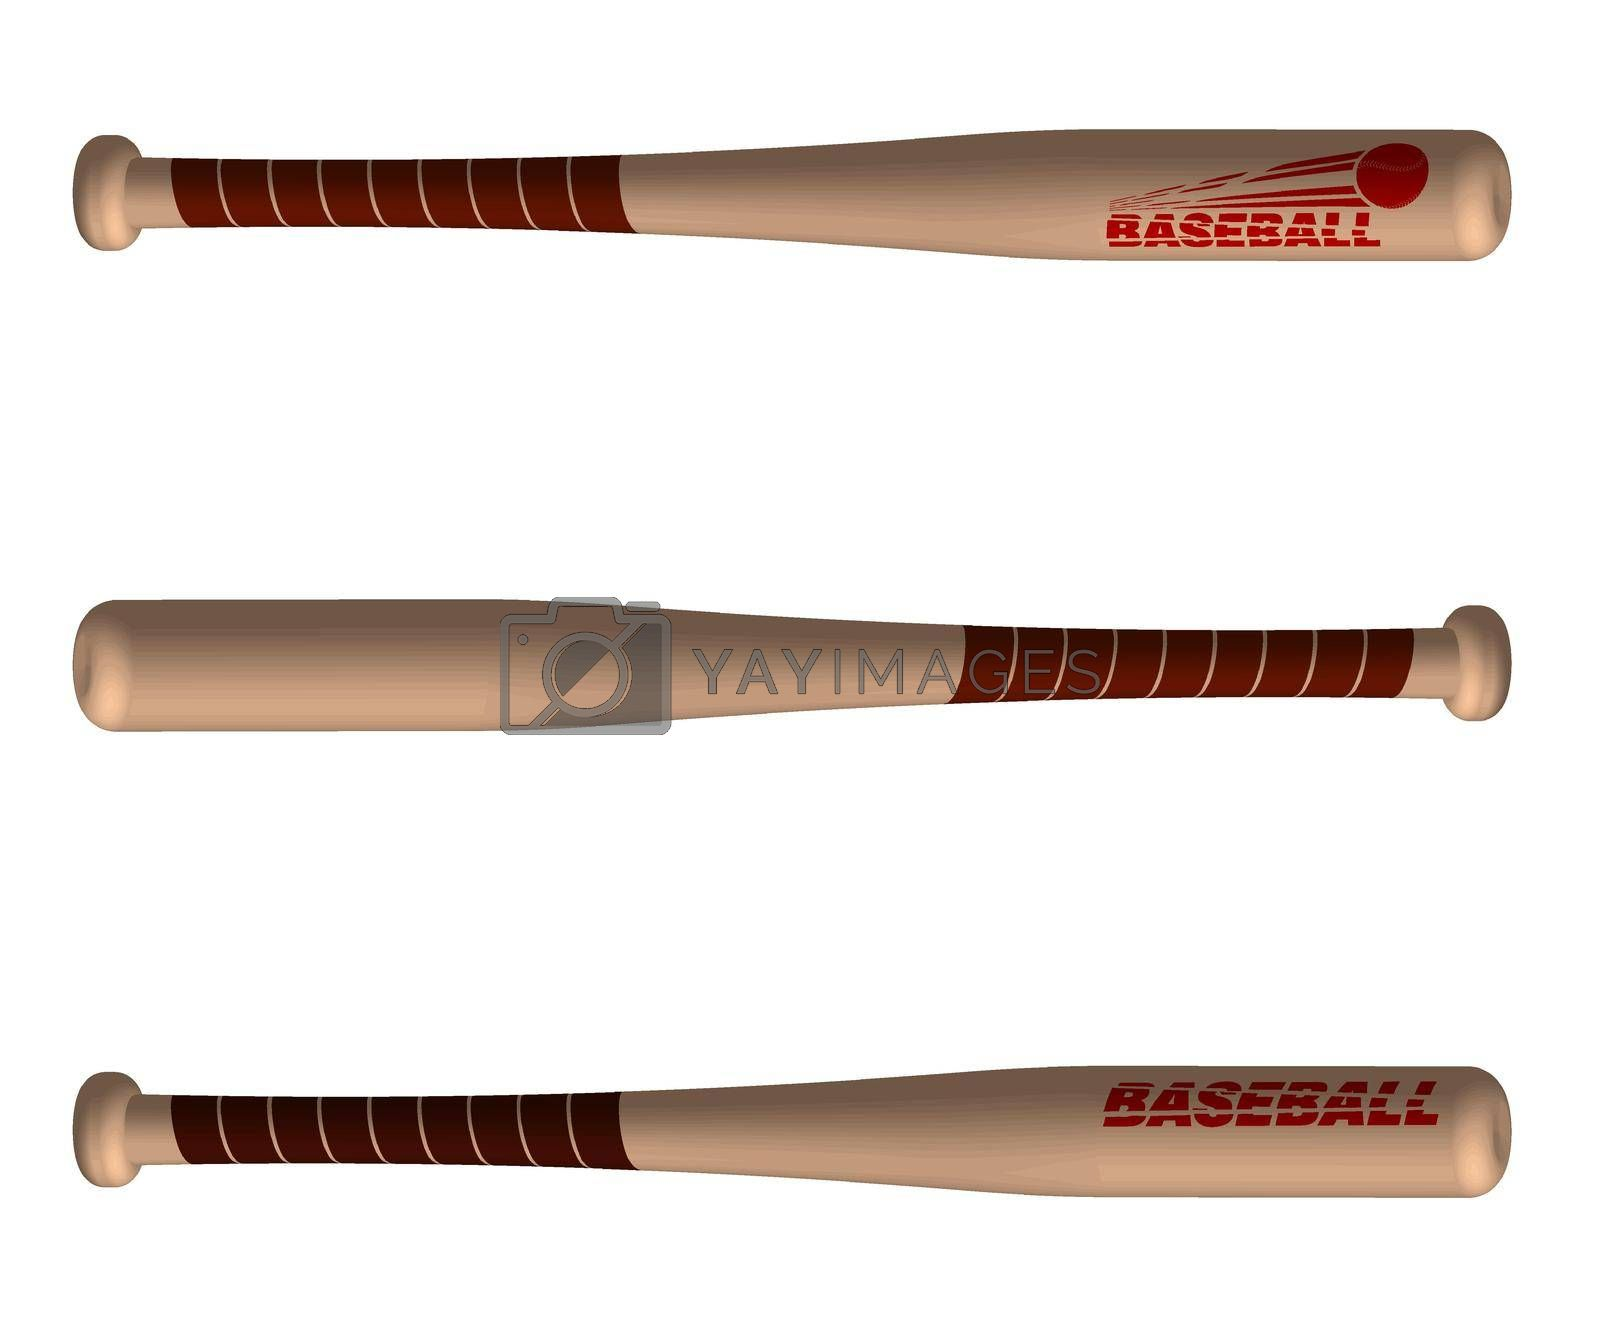 sports wooden baseball bats. American national sport. Active lifestyle. Realistic vector